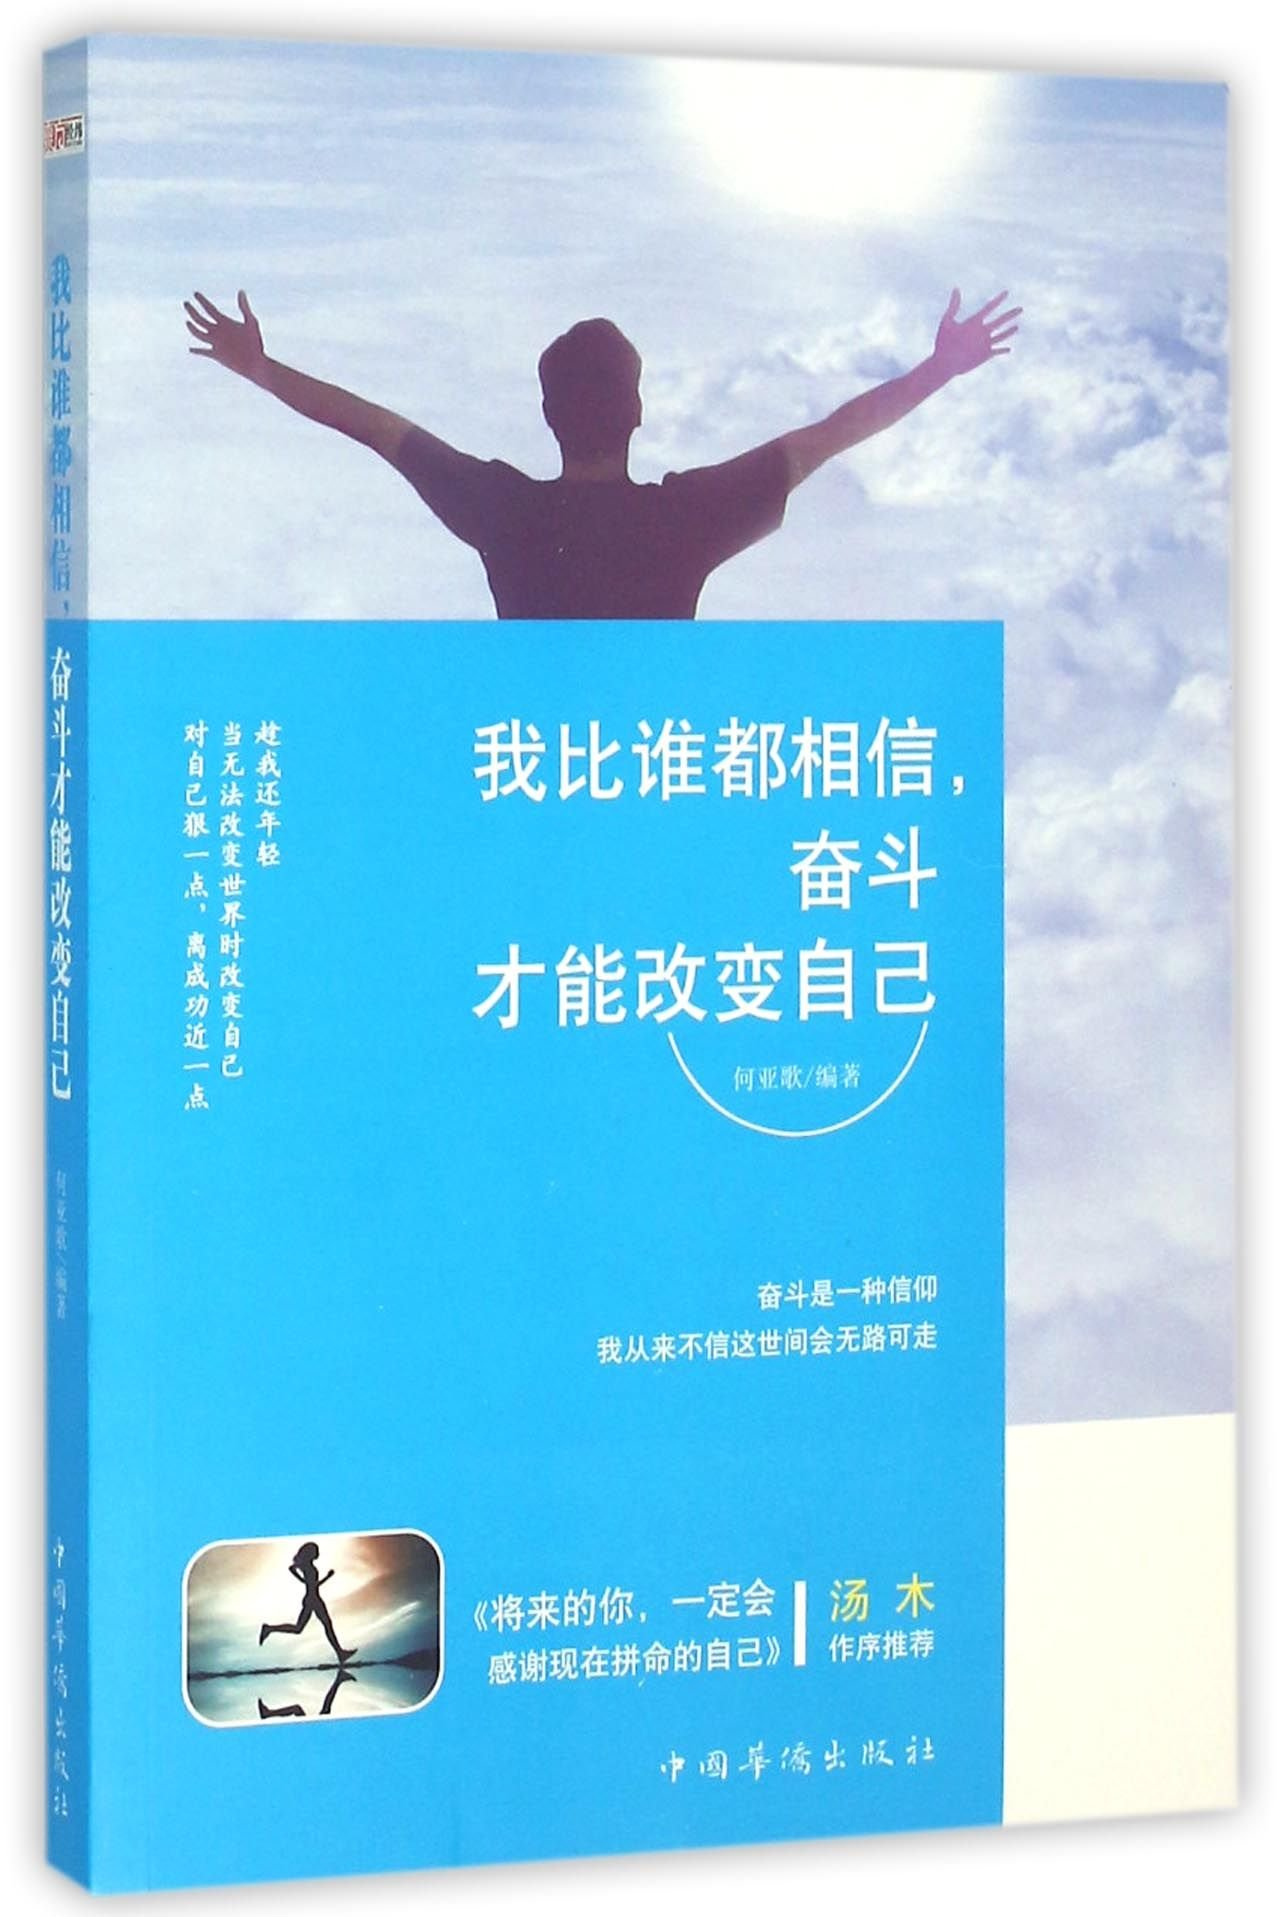 Download I Firmly Believe That Struggle Can Change Myself (Chinese Edition) pdf epub